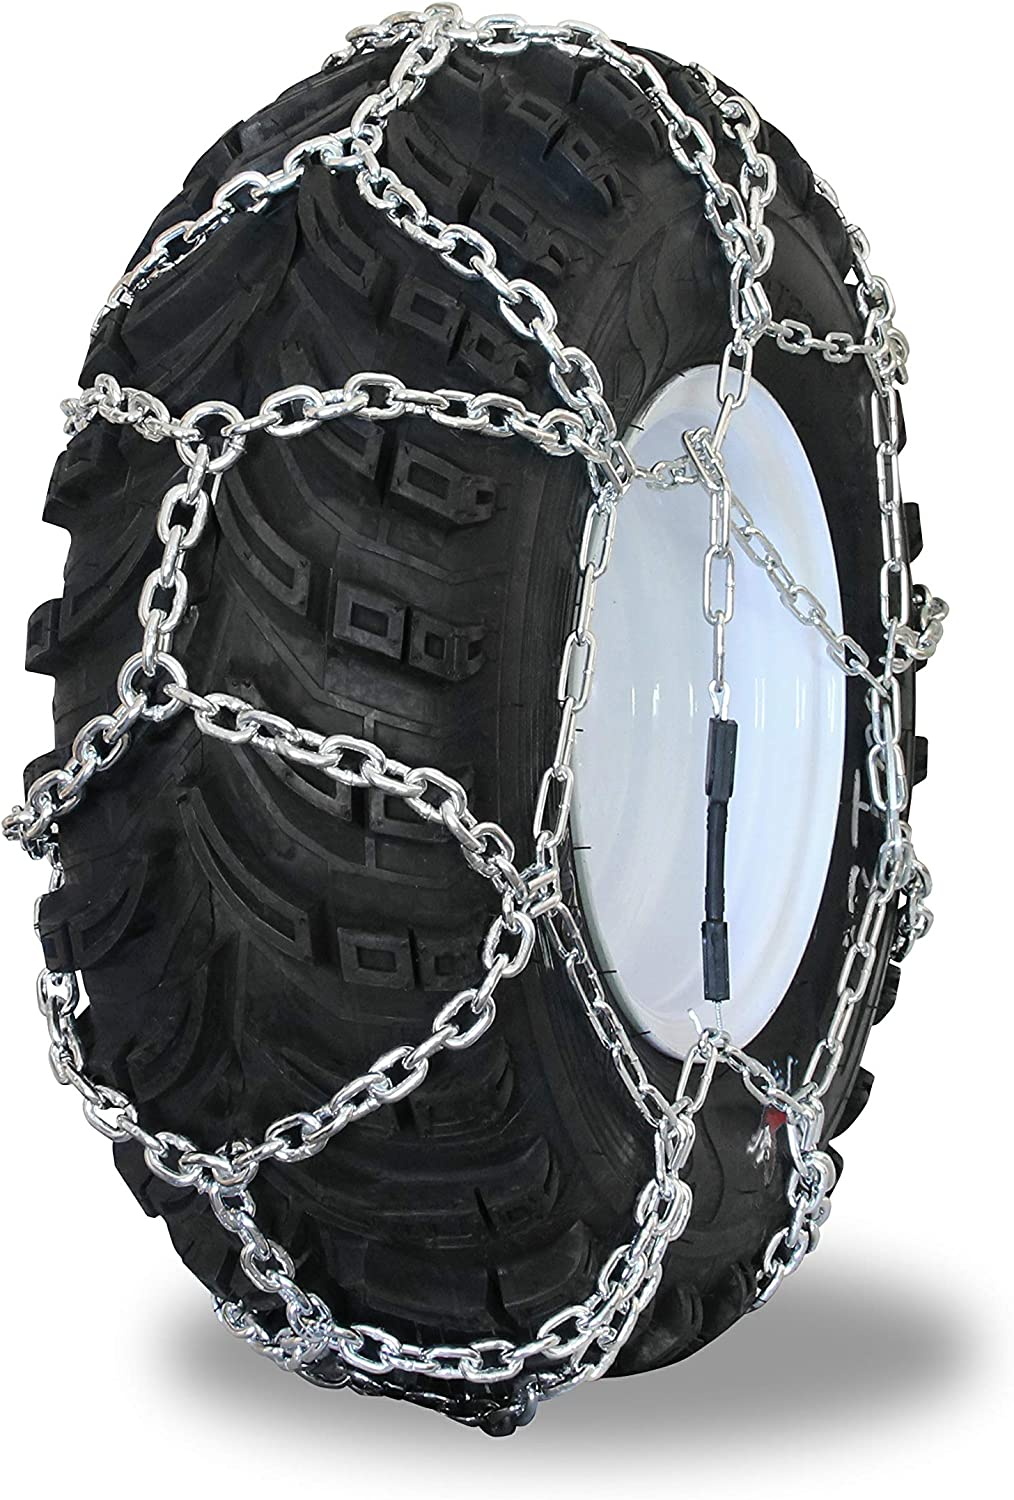 Grizzlar GTN-533 Garden Tractor/Snowblower Net/Diamond Style Alloy Tire Chains 16x7.50-8